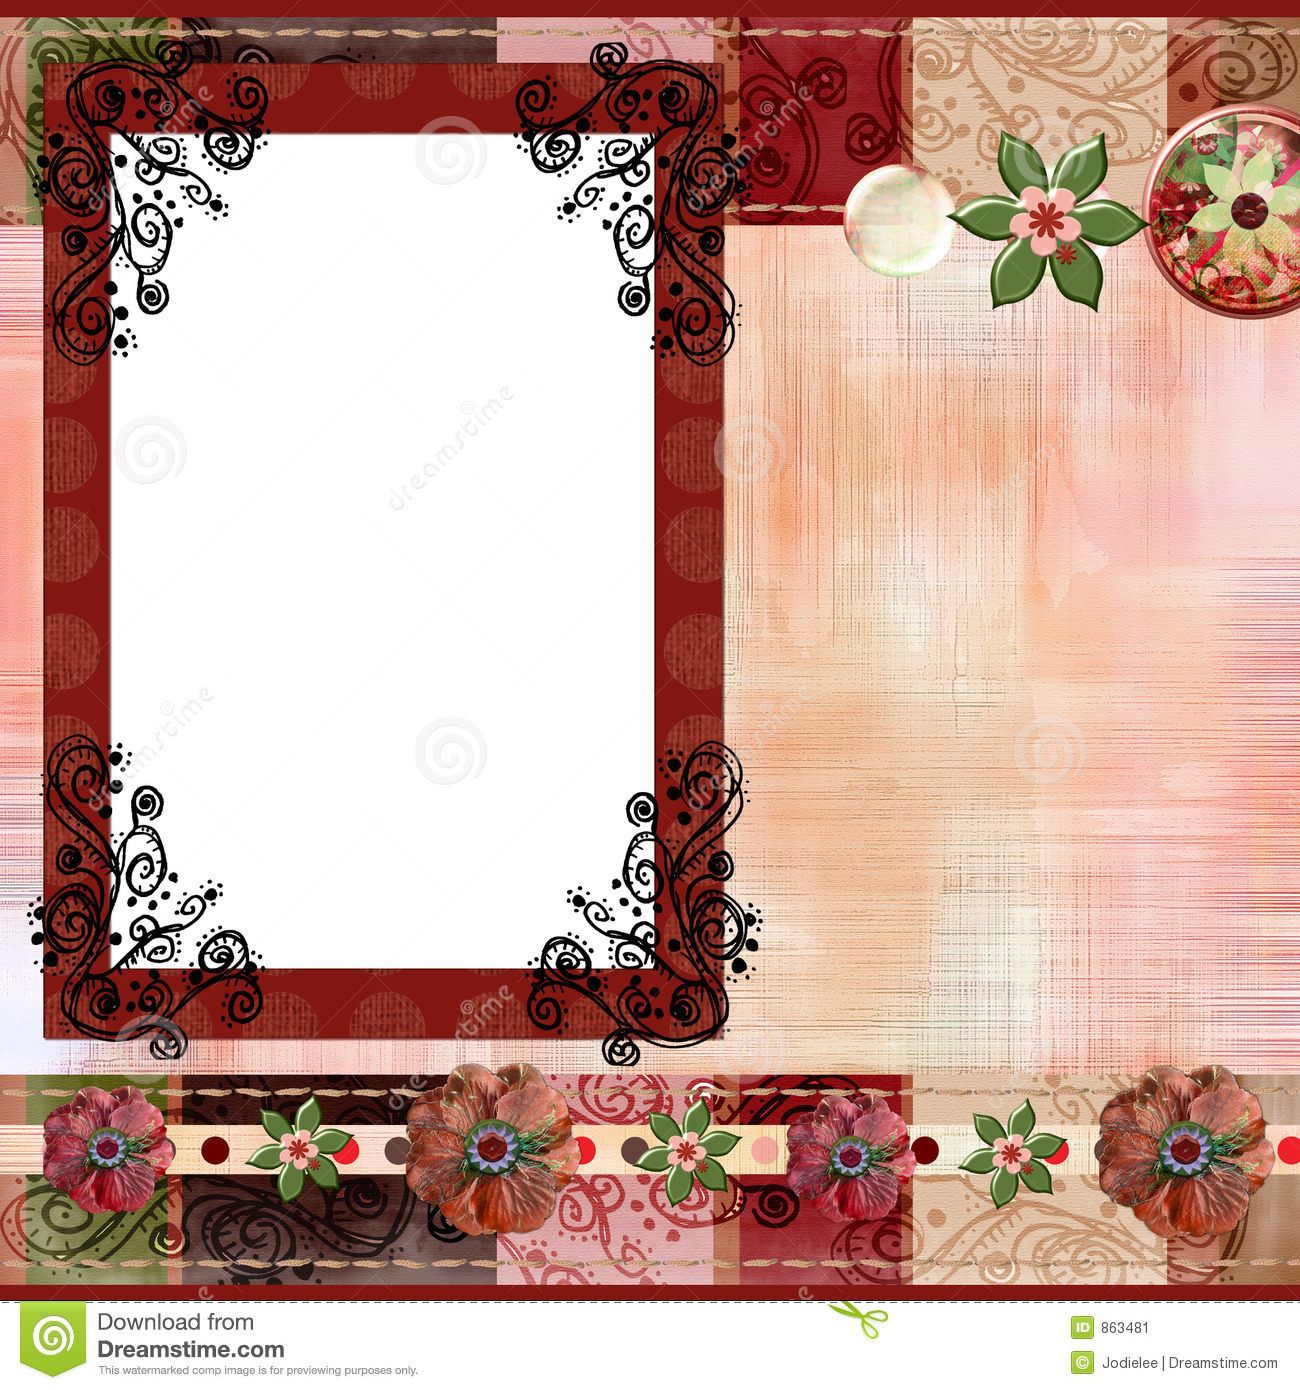 Download Bohemian Gypsy Style Scrapbook Album Page Layout 8x8 Inches Stock Image